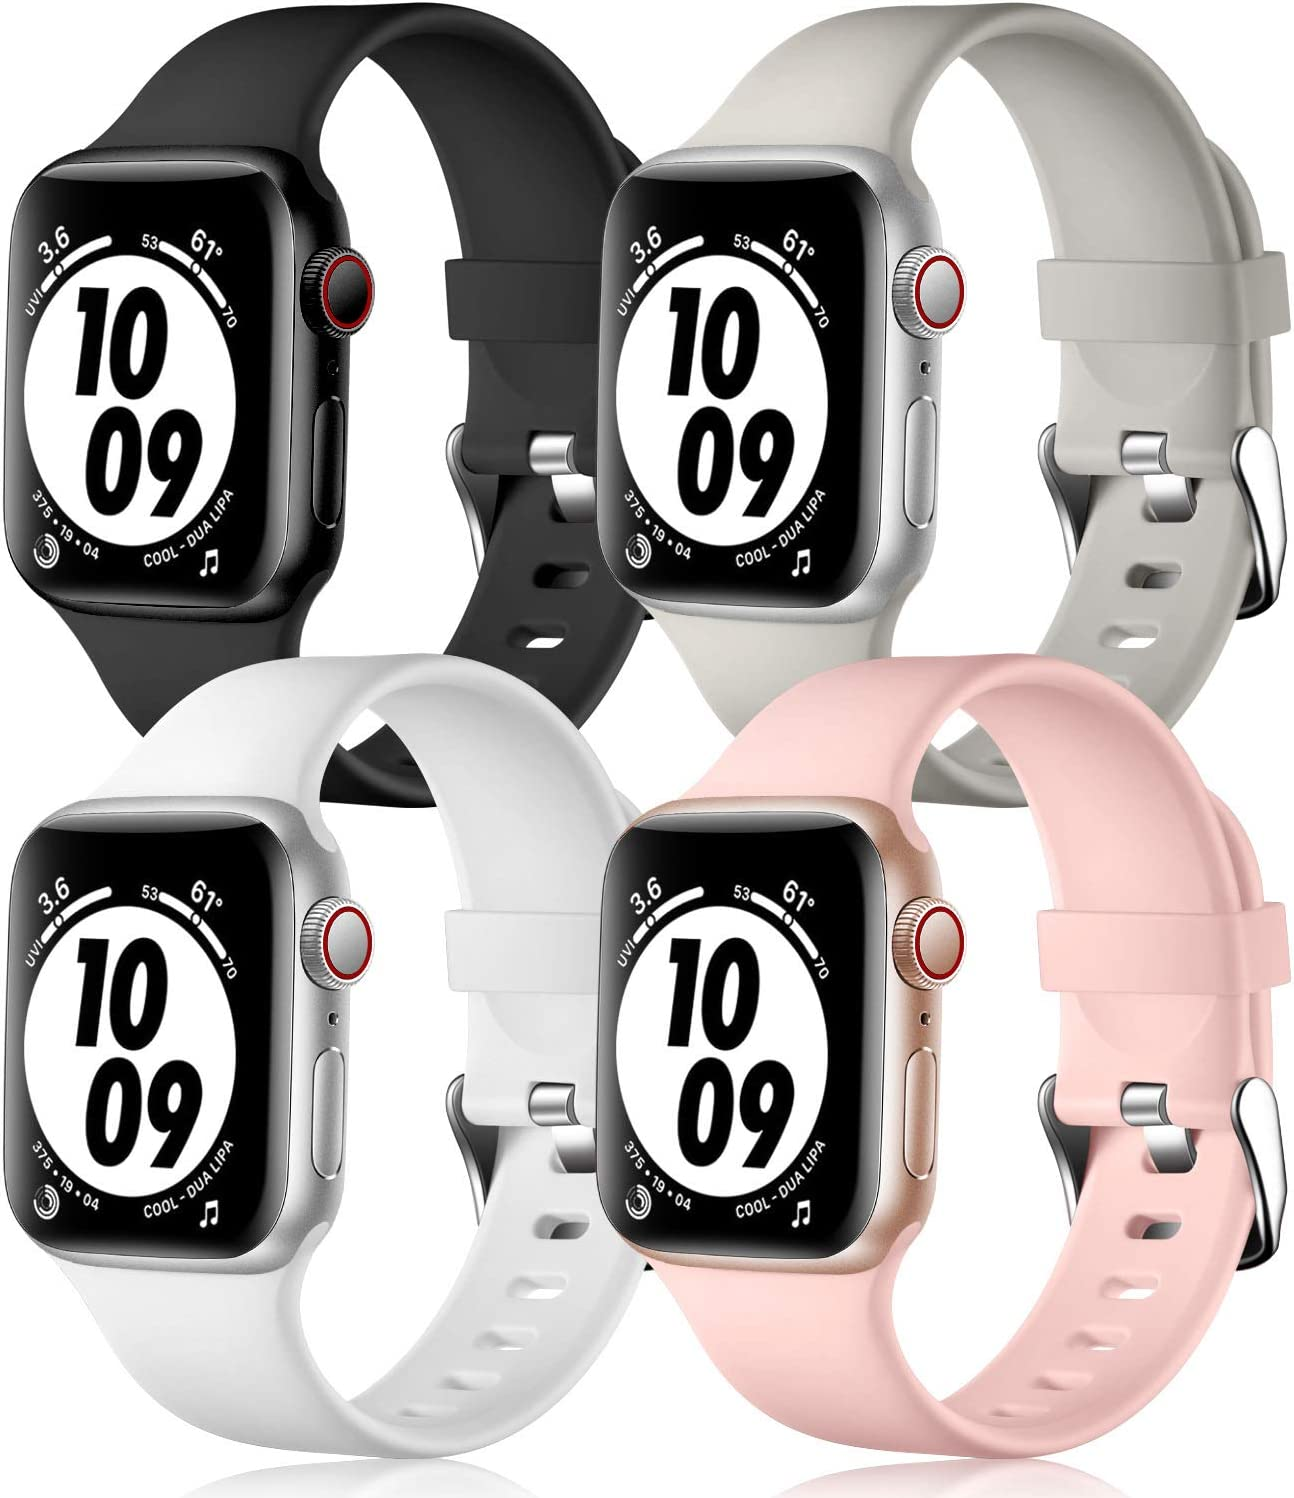 Getino Silicone Bands Compatible for iWatch Bands 38mm 40mm, Soft and Durable Apple Watch Sport Bands Accessories, for iWatch Series SE Series 6 5 4 3 2 1, S/M Black/Pink/White/Gray